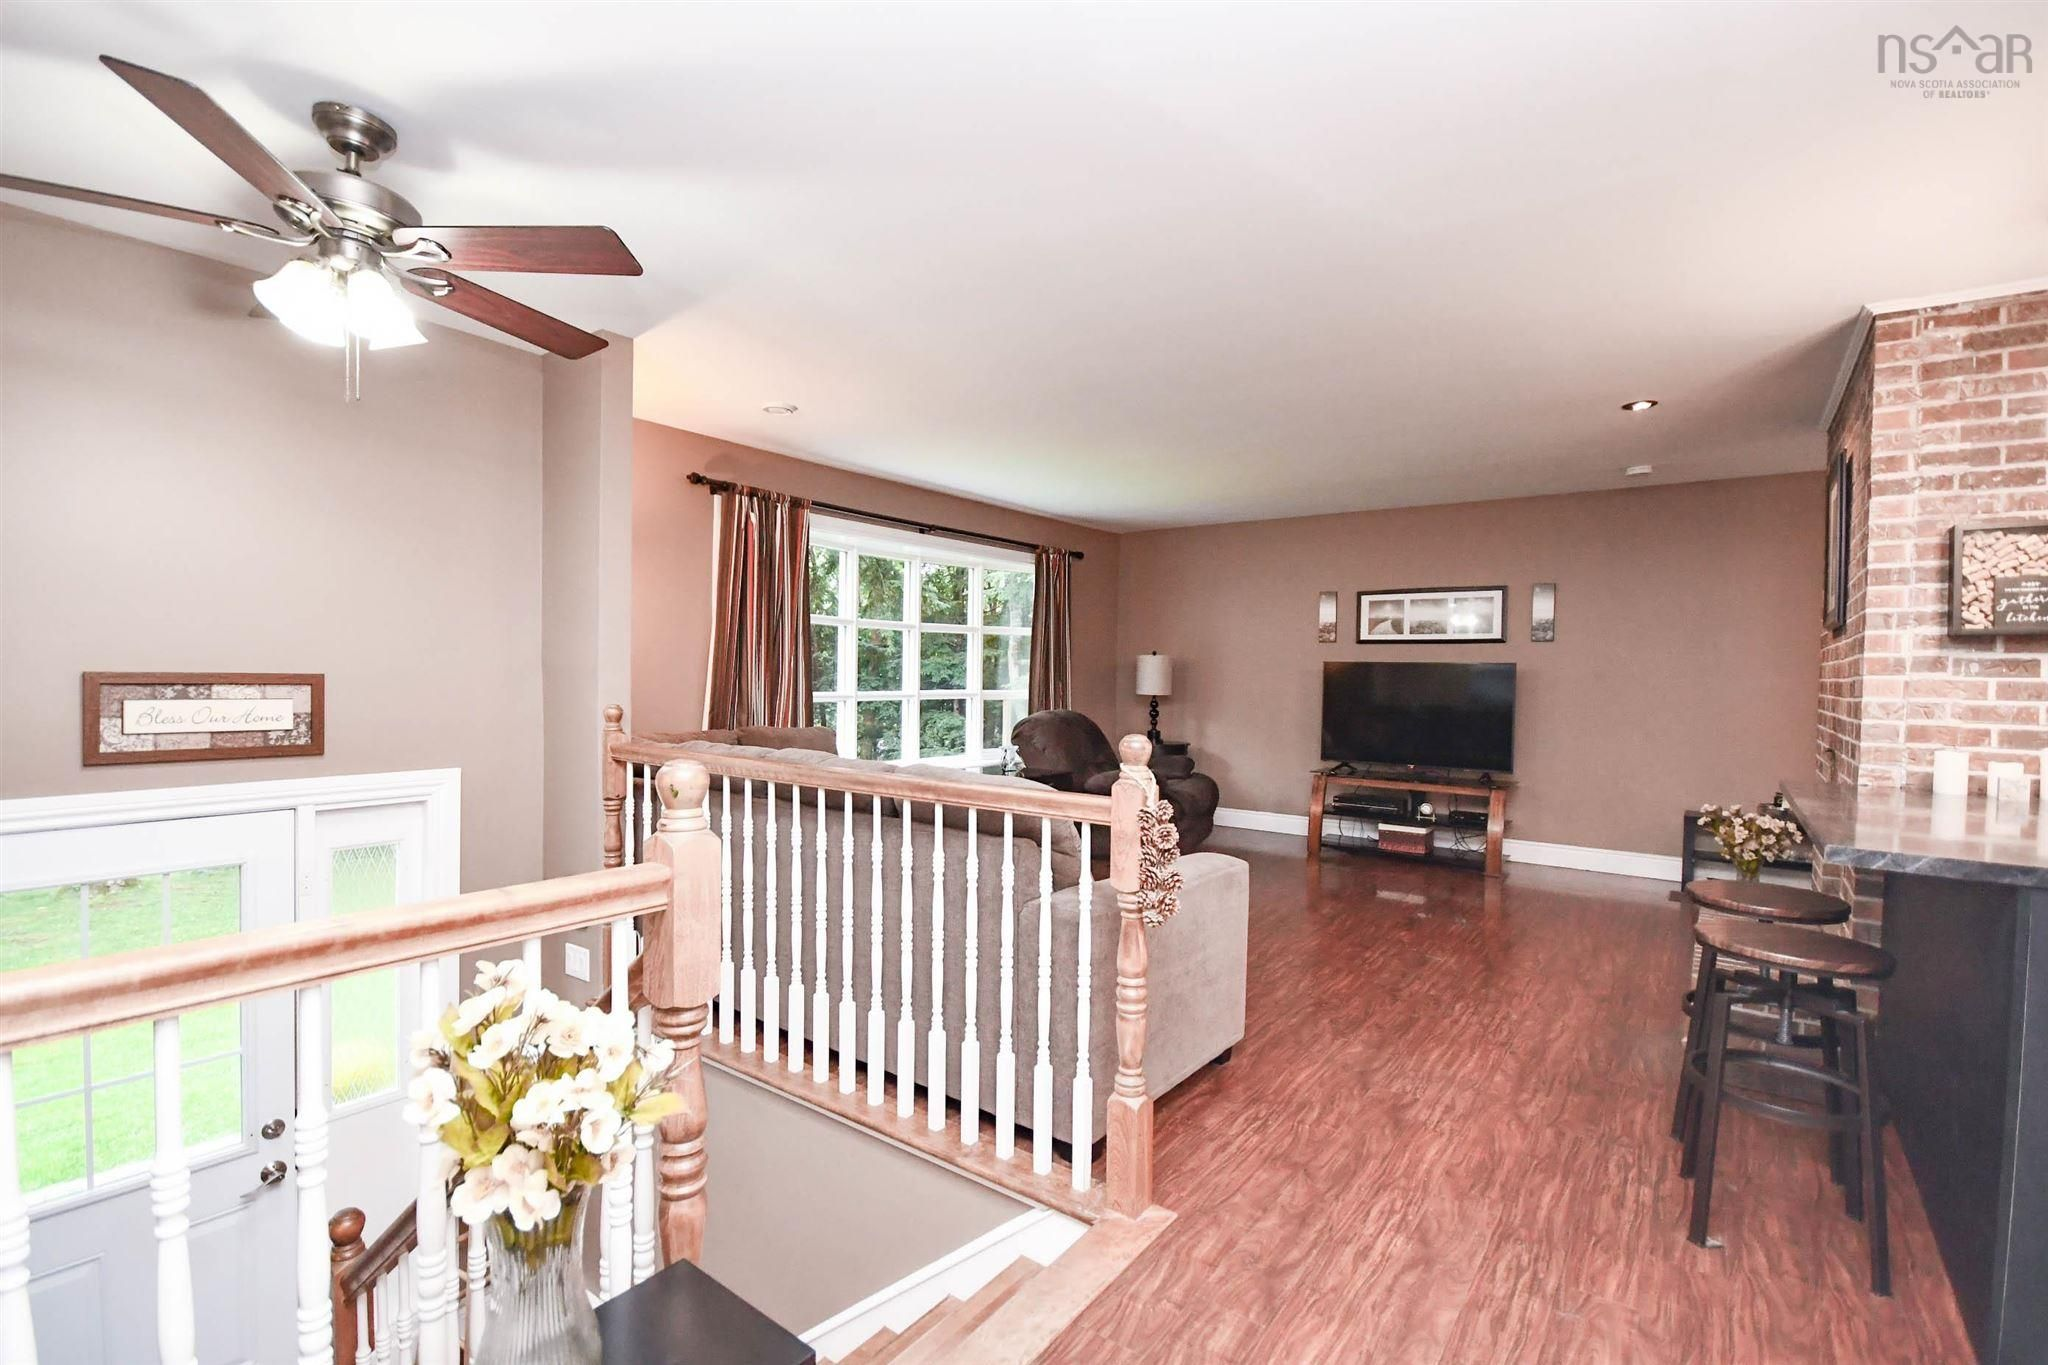 Photo 3: Photos: 1 Davison Drive in Fall River: 30-Waverley, Fall River, Oakfield Residential for sale (Halifax-Dartmouth)  : MLS®# 202123336